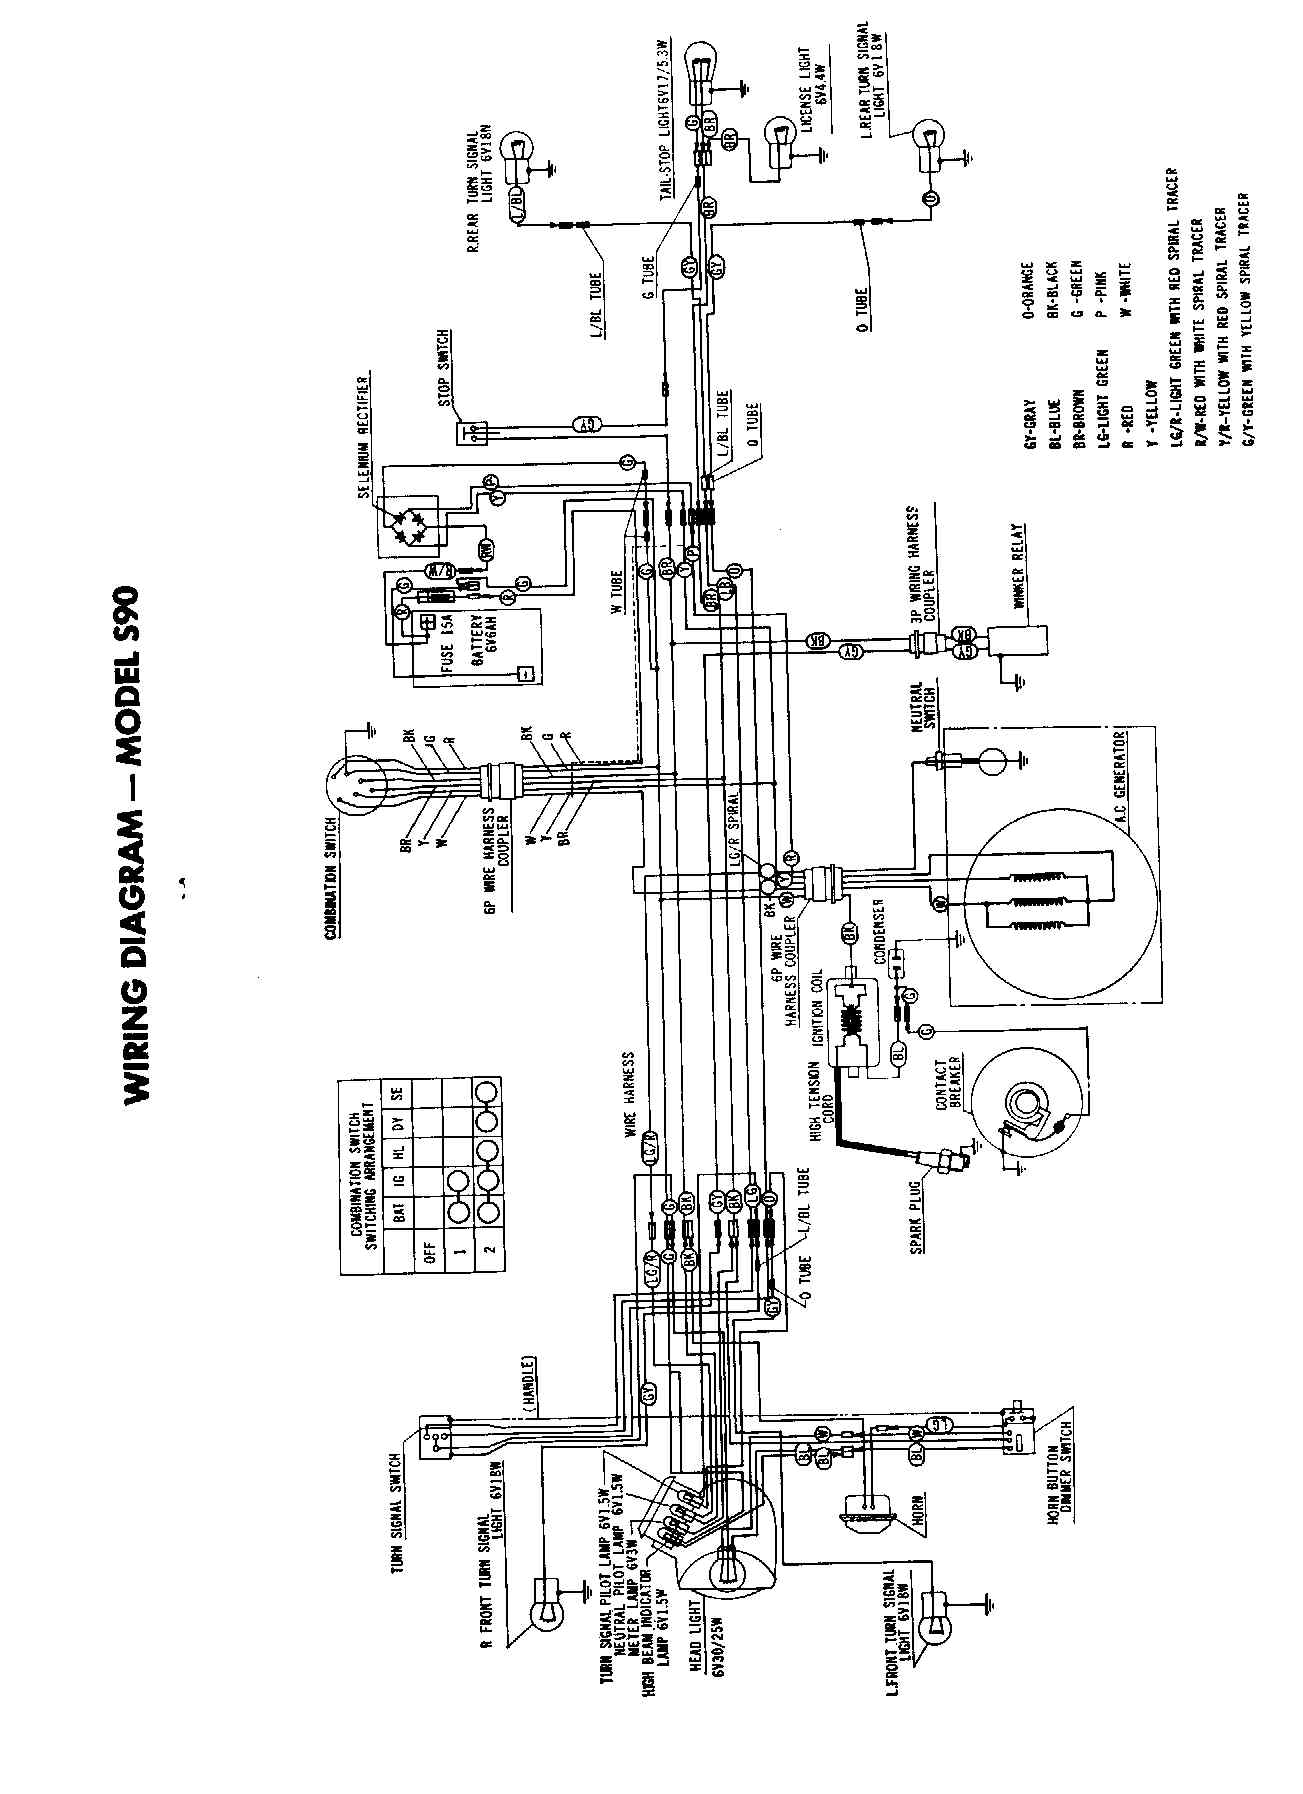 Xr200r Wiring Diagram Library 1982 Honda Cb750 1964 S90 Diagrams